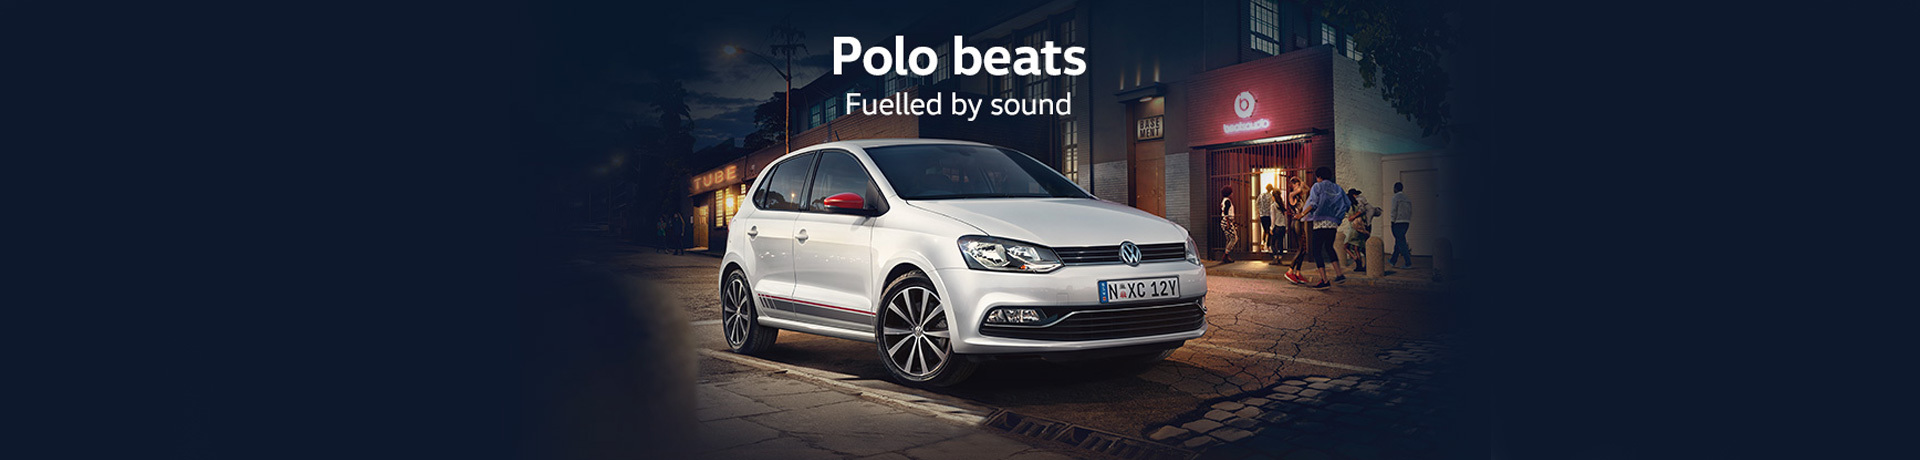 Polo Beats: Fueled by sound